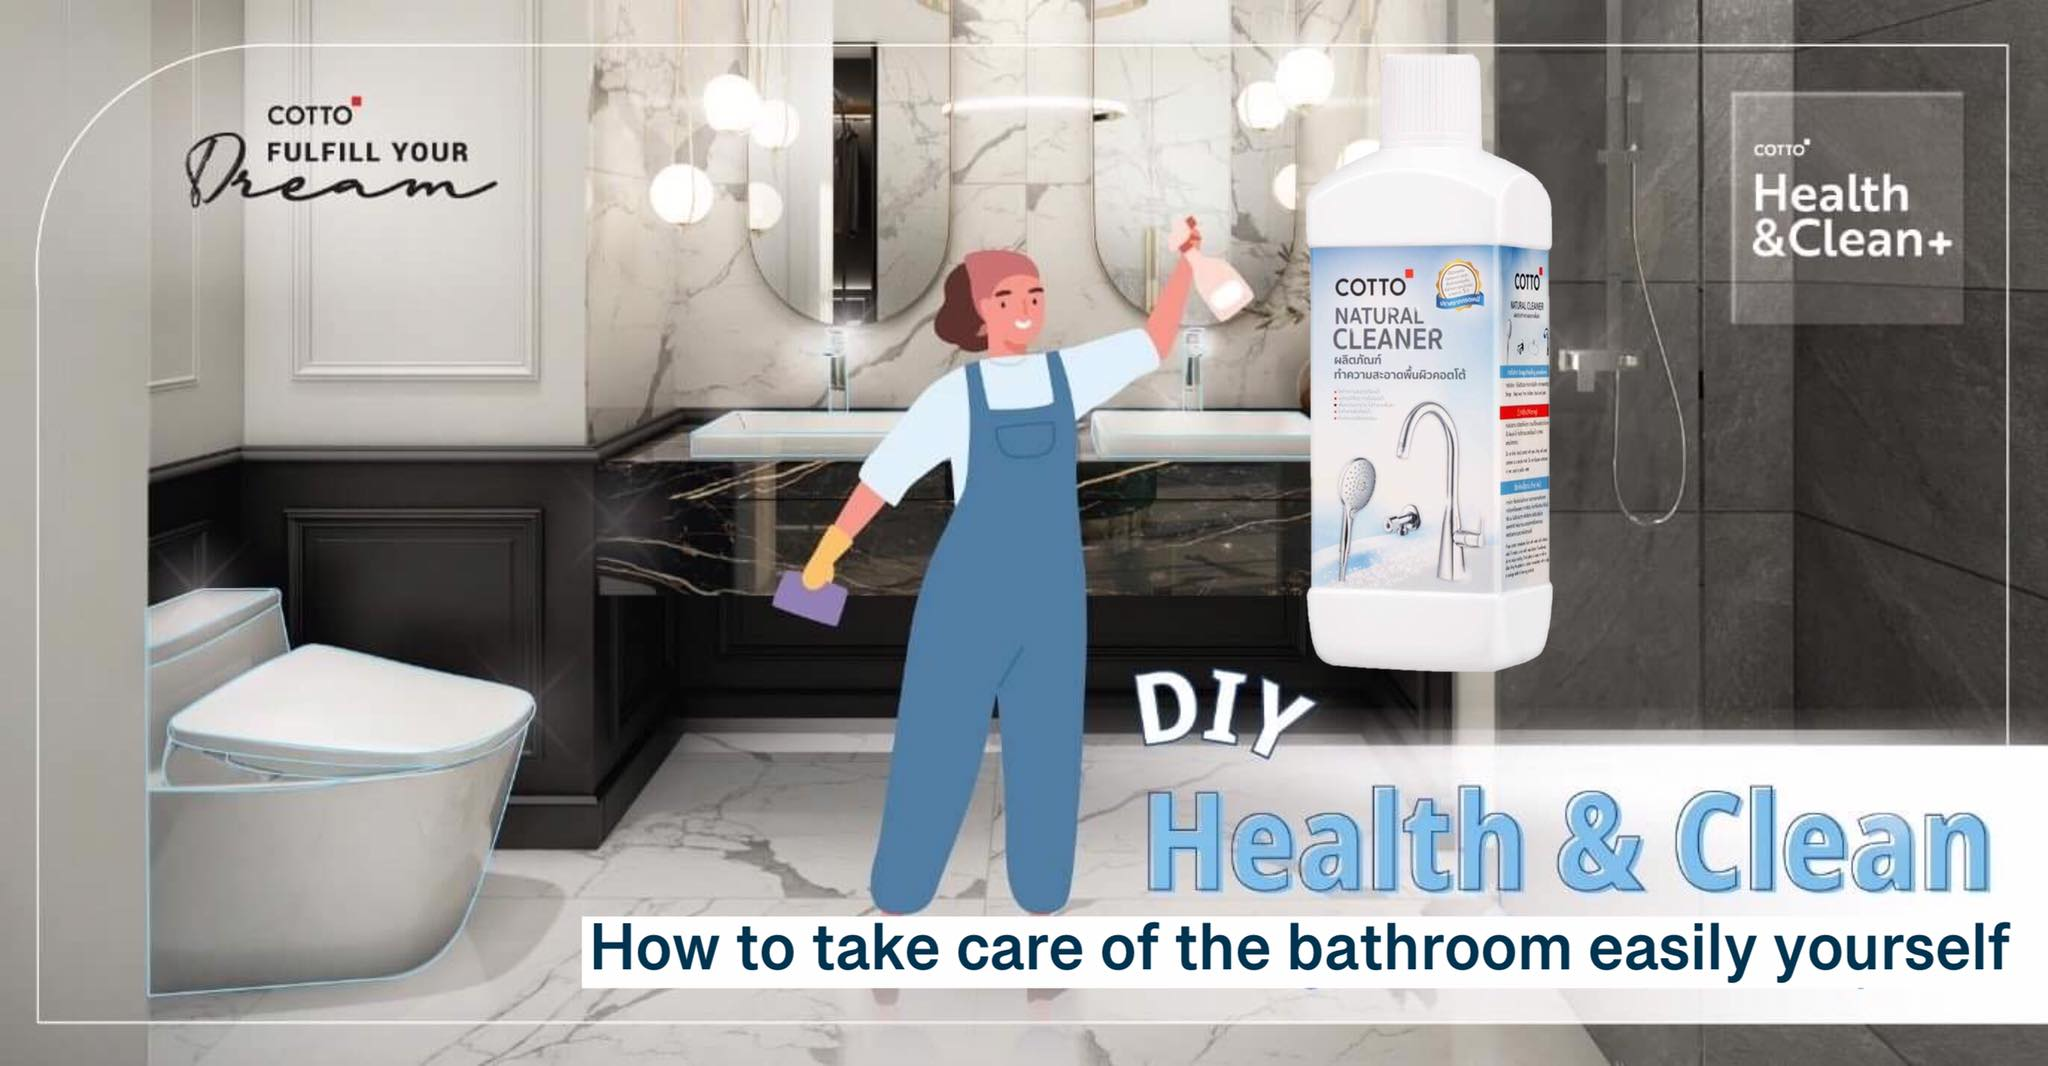 DIY Health & Clean discloses the way how to keep your bathroom clean and to maintain your bathroom hygiene by yourself